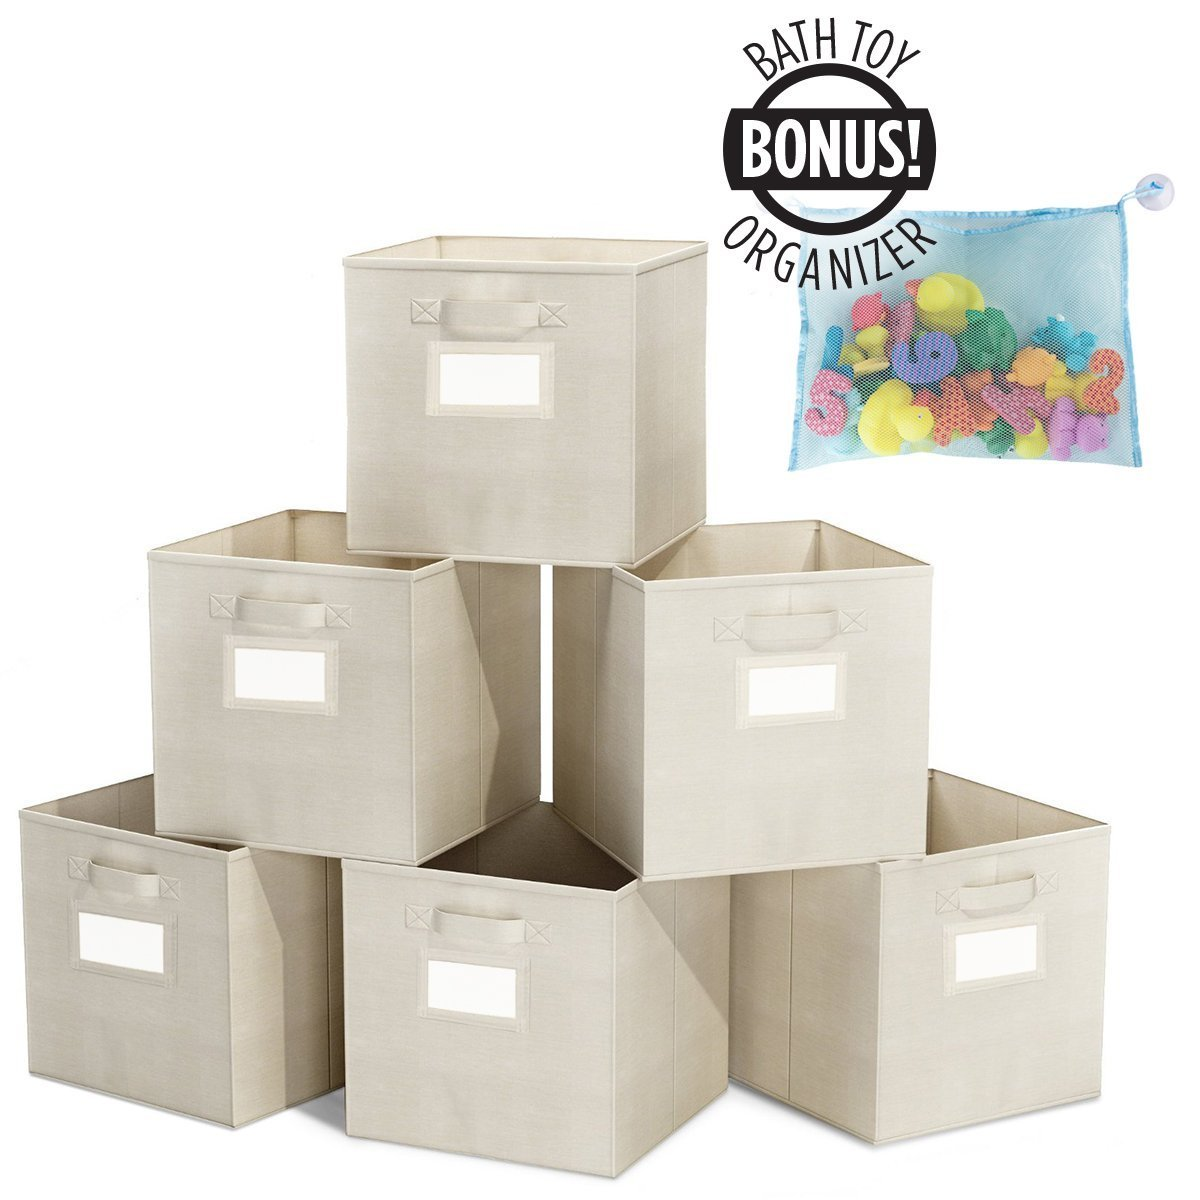 6 Pack Foldable Cube Storage Bins - Bonus Toy Organizer- With Label Holder for Better Organization - Fabric Cubes Are Collapsible Great Organizer for Shelf, Closet (6 Pack Laundry Cubes)